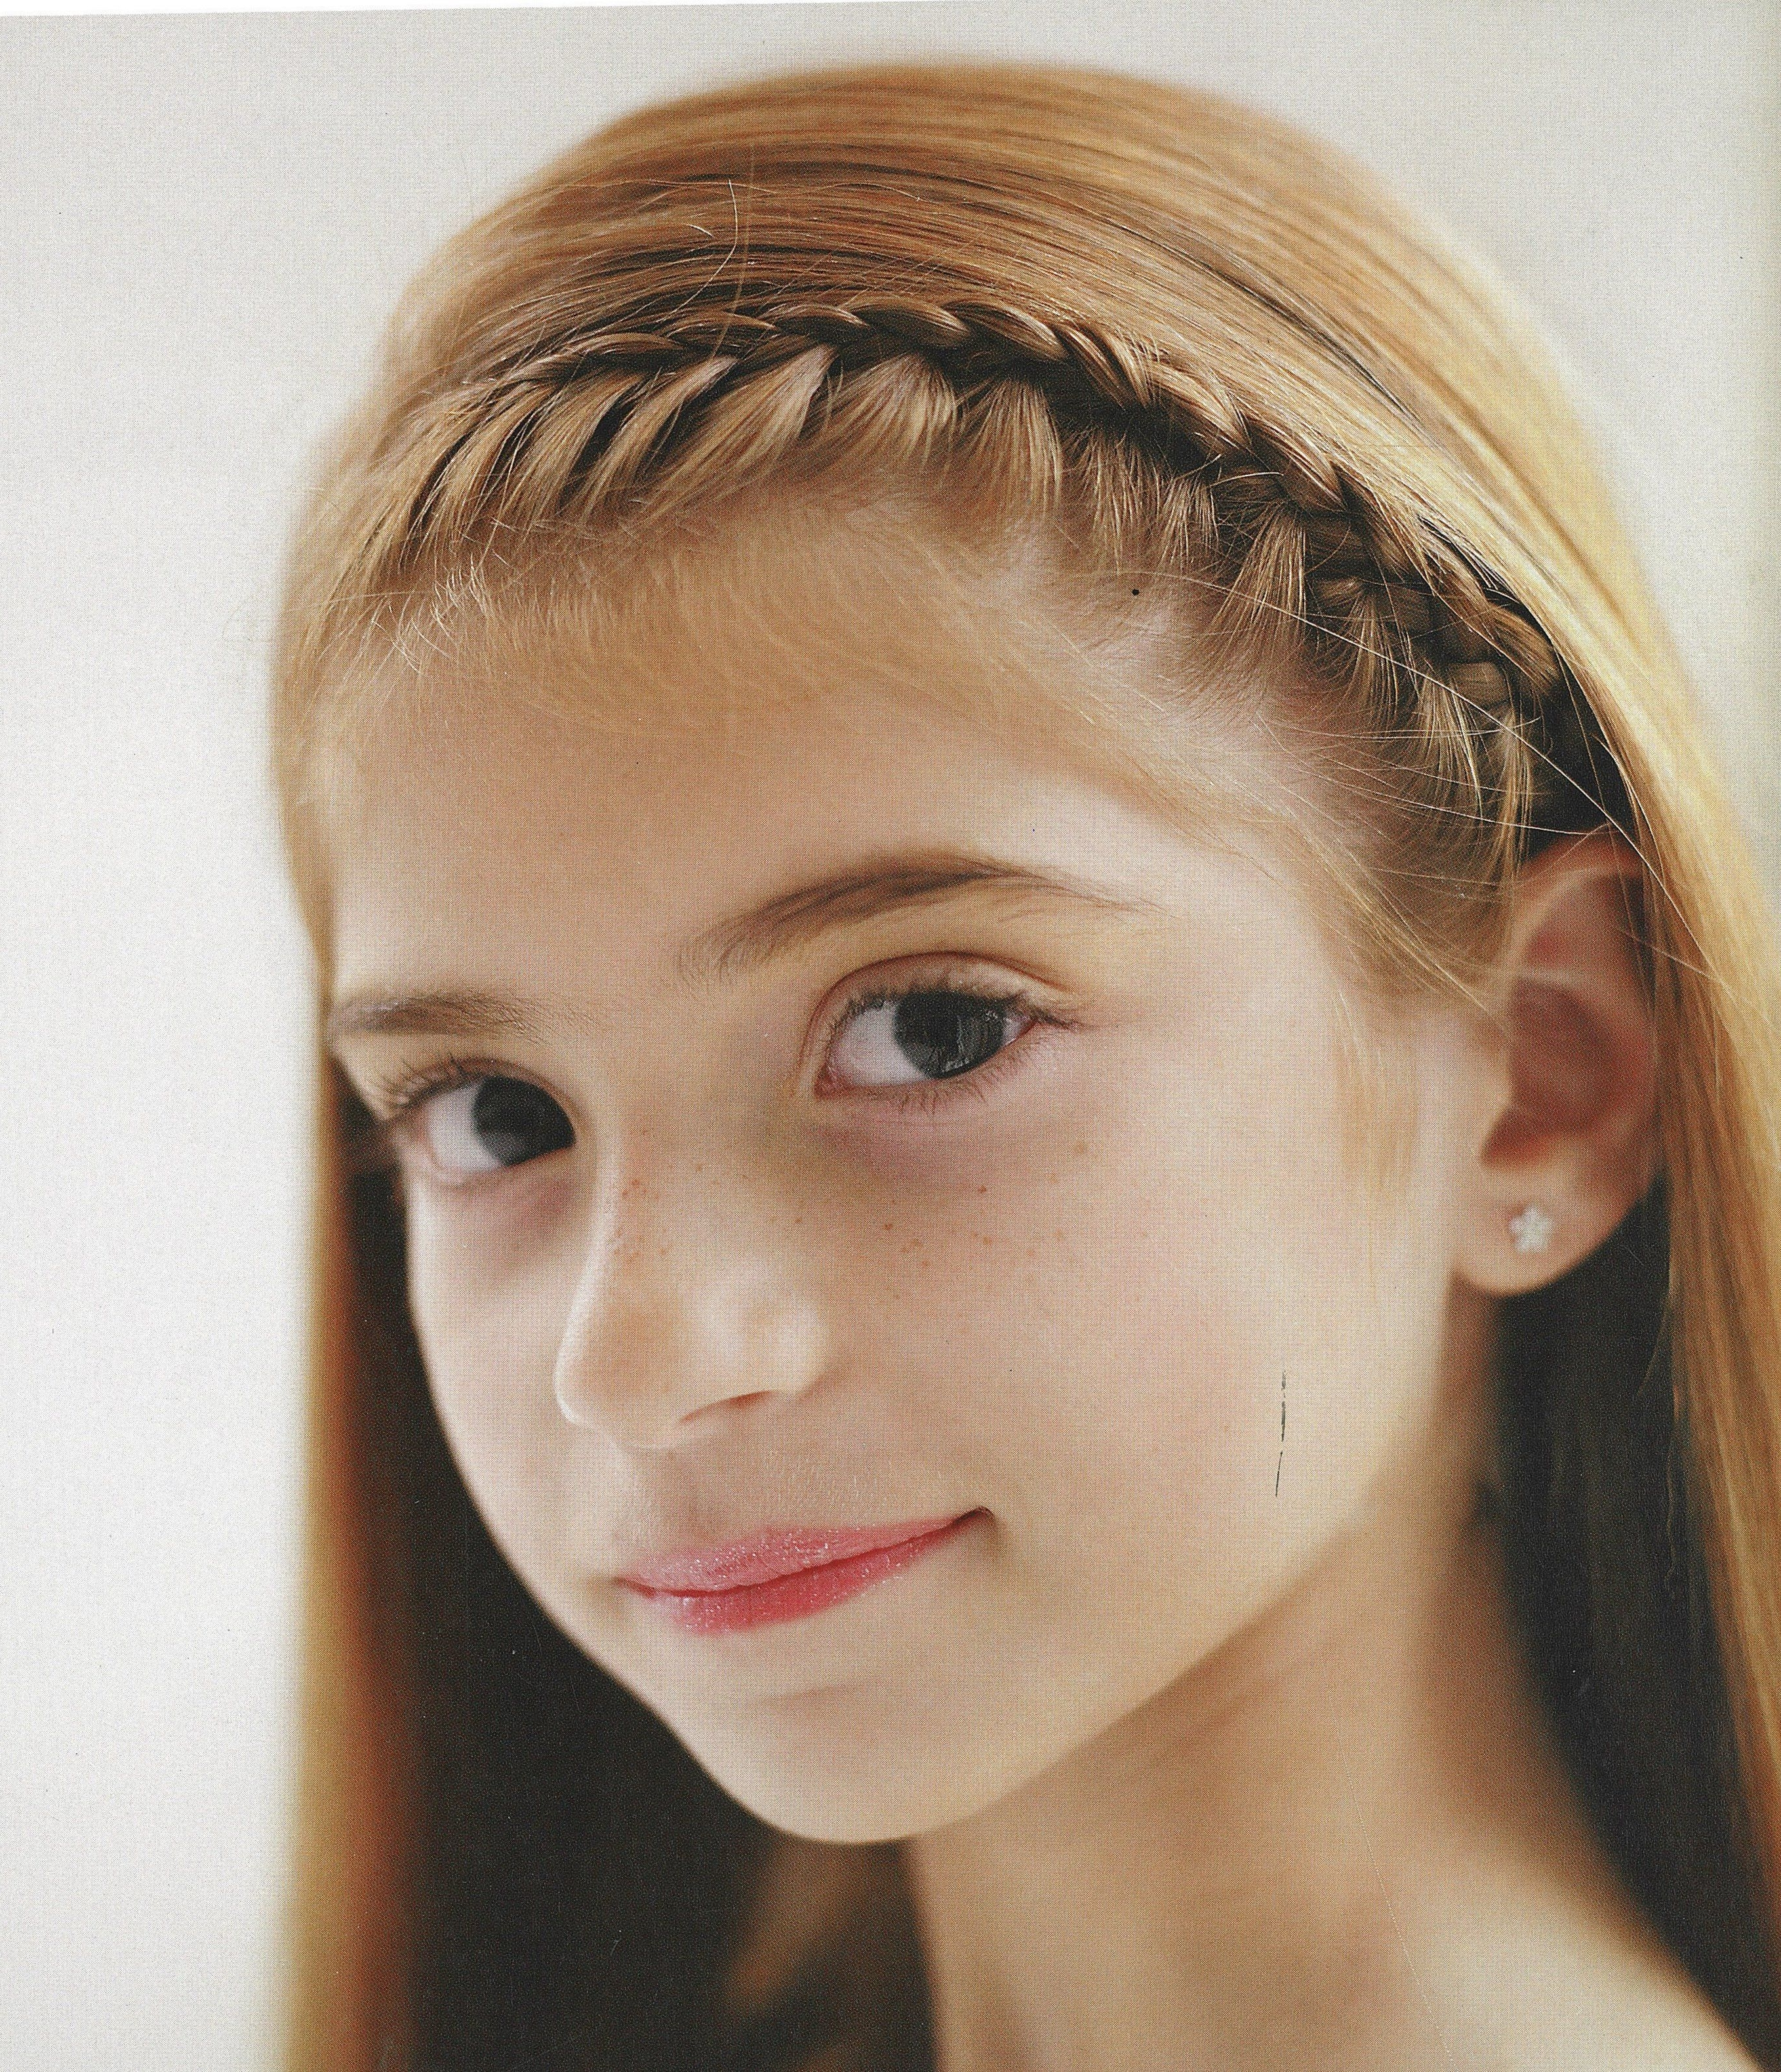 Hairstyles For Girls Dance Recitals Short Hair (View 10 of 15)